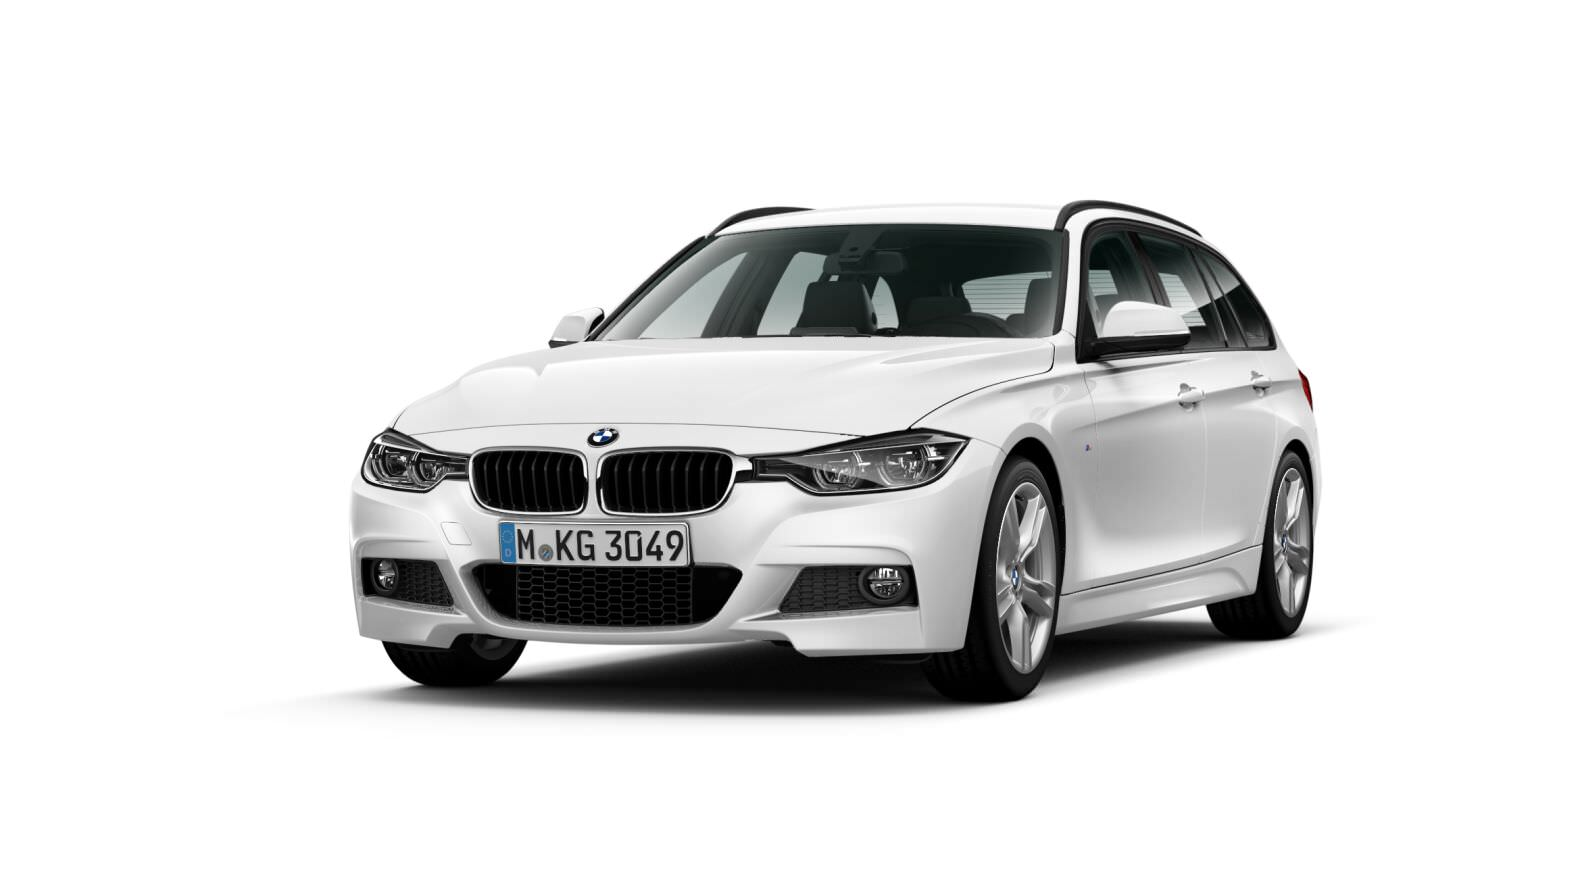 BMW 3 Series Touring 320i M Sport Shadow Edition 5dr Step Auto Contract Hire/Contract Hire Offer